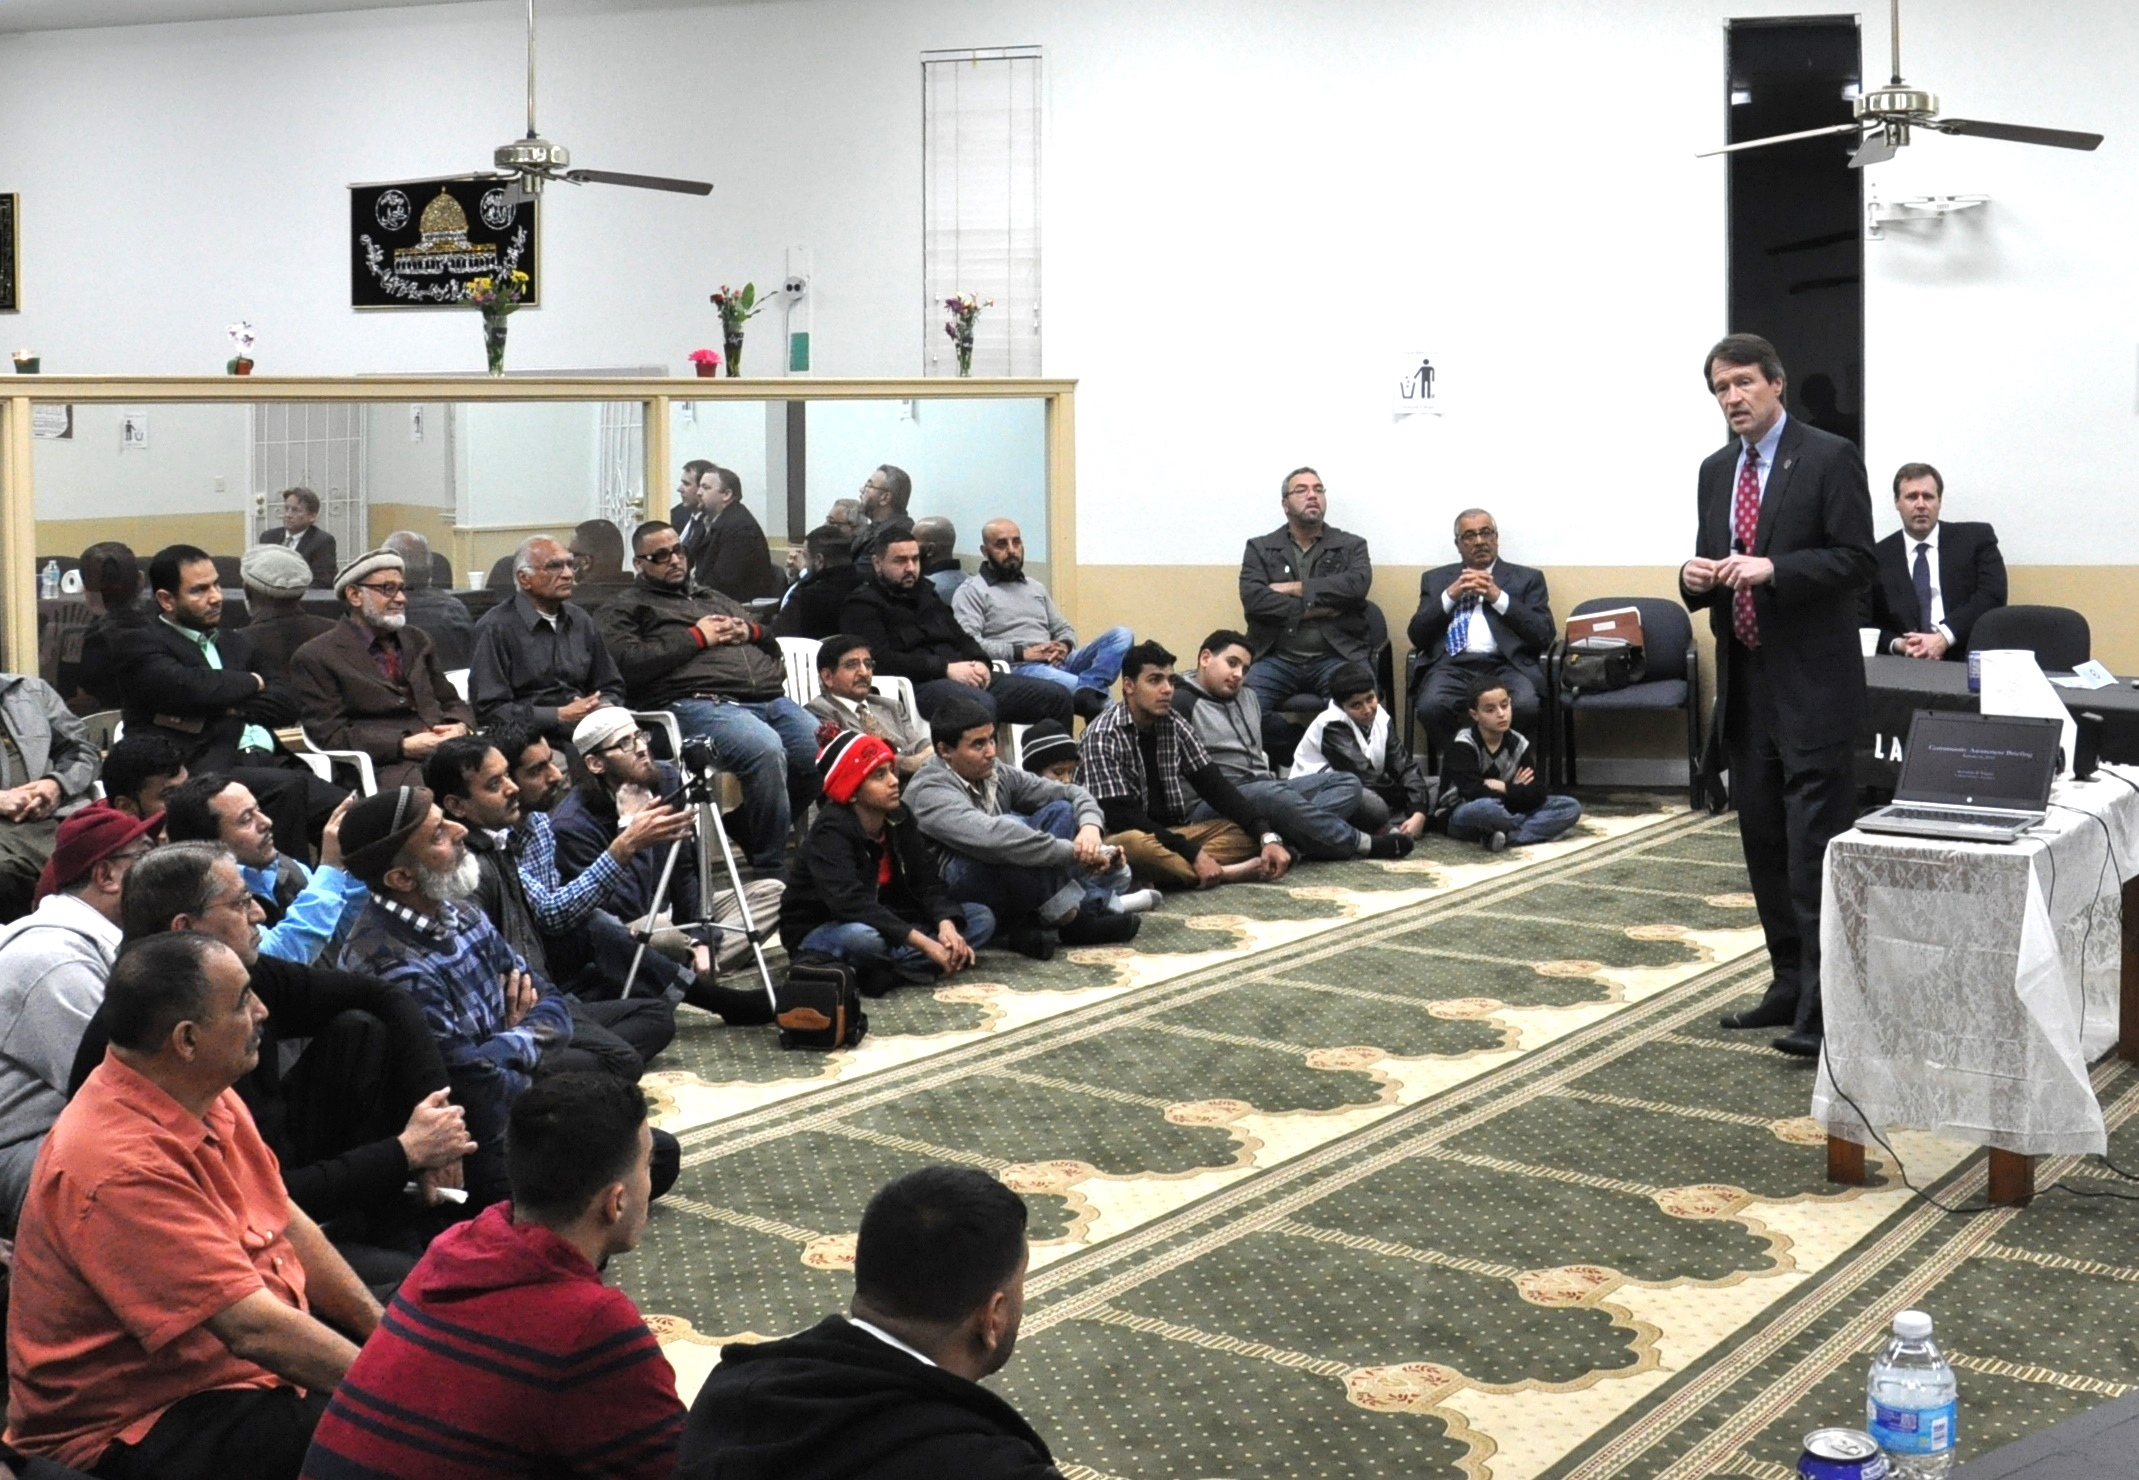 On January 8, 2016, US Attorney Wagner and members of his staff traveled to the Islamic Center of Merced, and later that day to the Madera Islamic Center, to speak to congregants about matters of interest to the Muslim Community